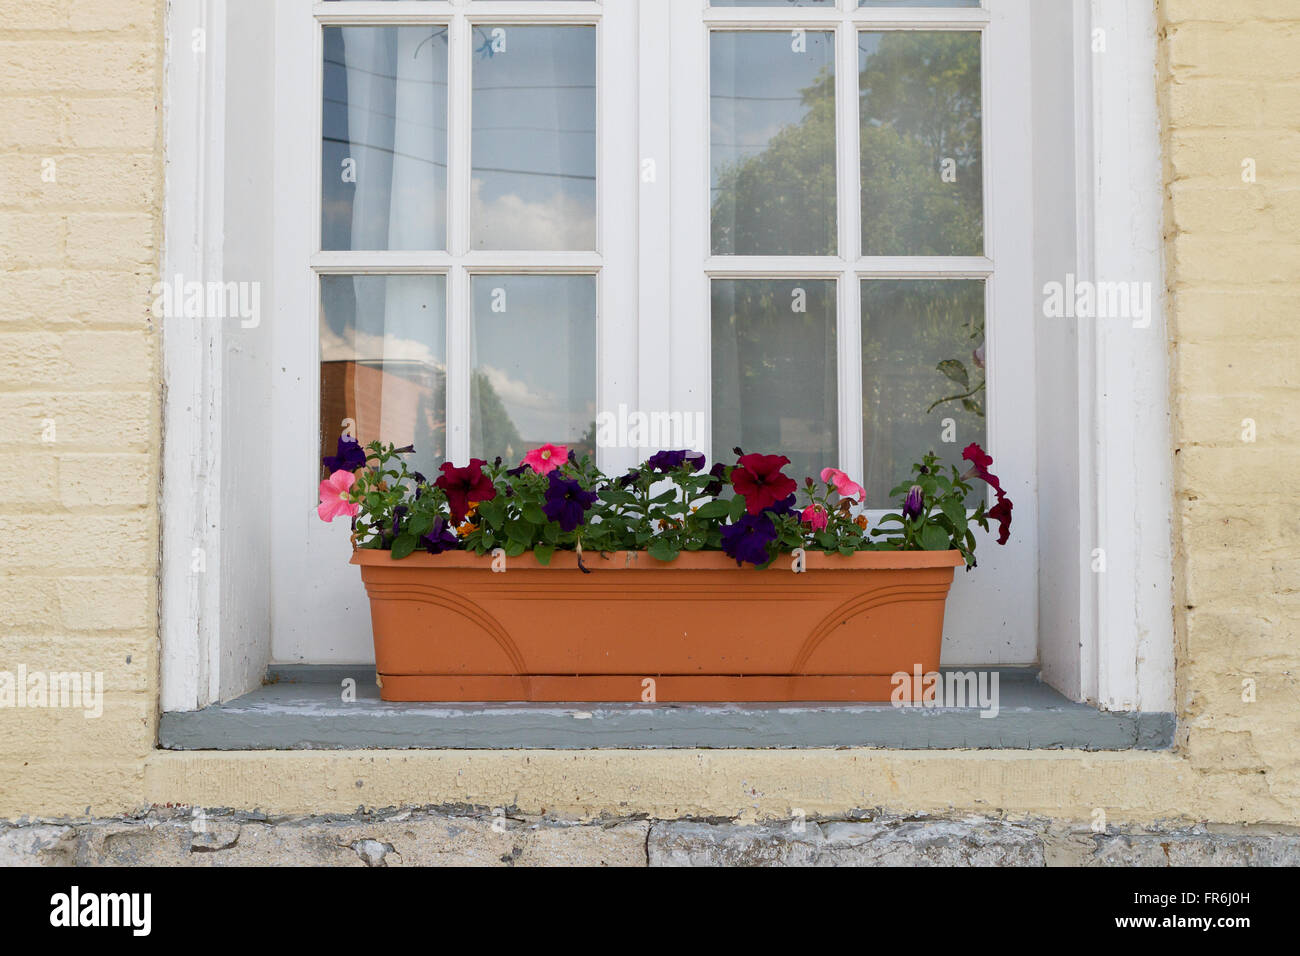 Flower box in window of painted brick home - Stock Image